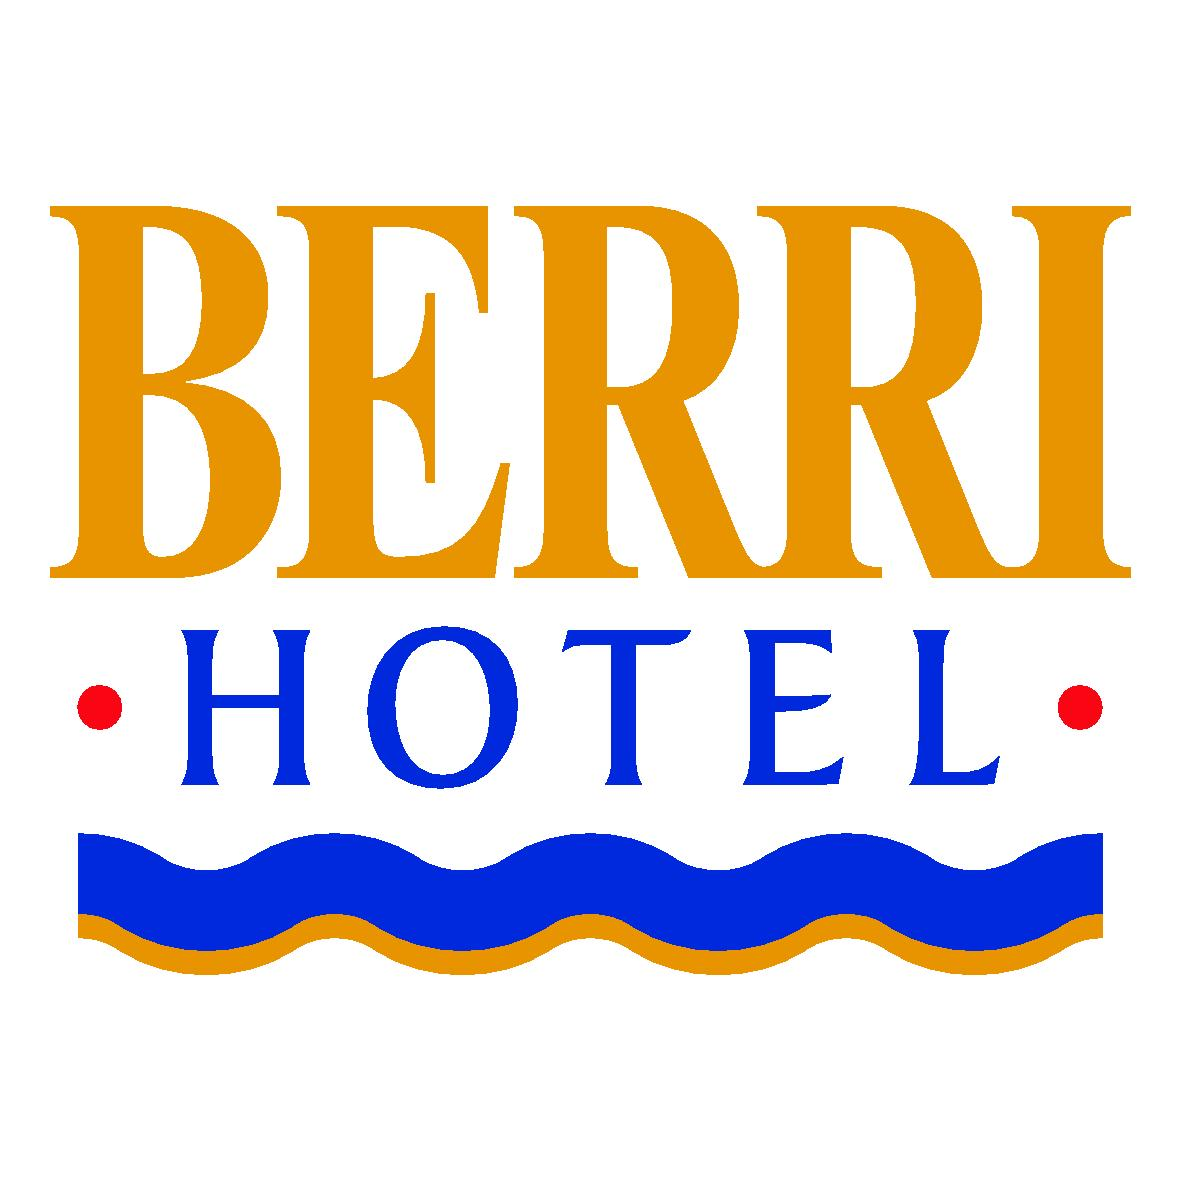 Berri Hotel - Whitsundays Accommodation